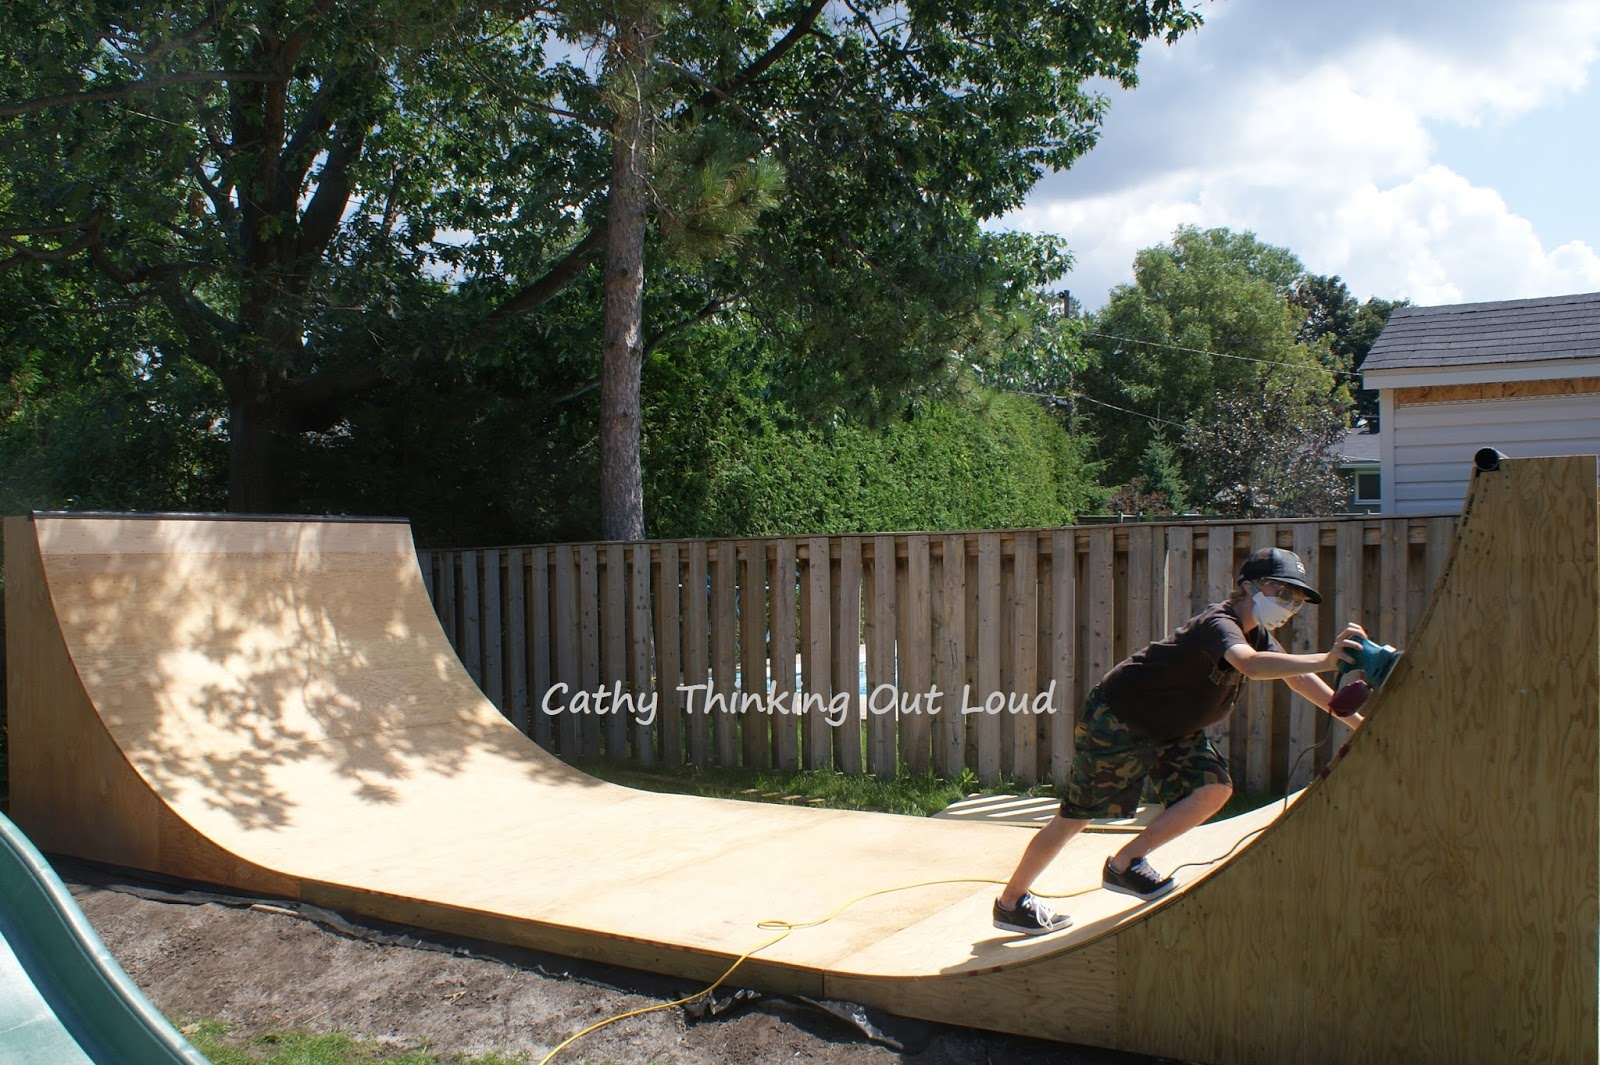 cathy thinking out loud things my kid learned at the skateboard